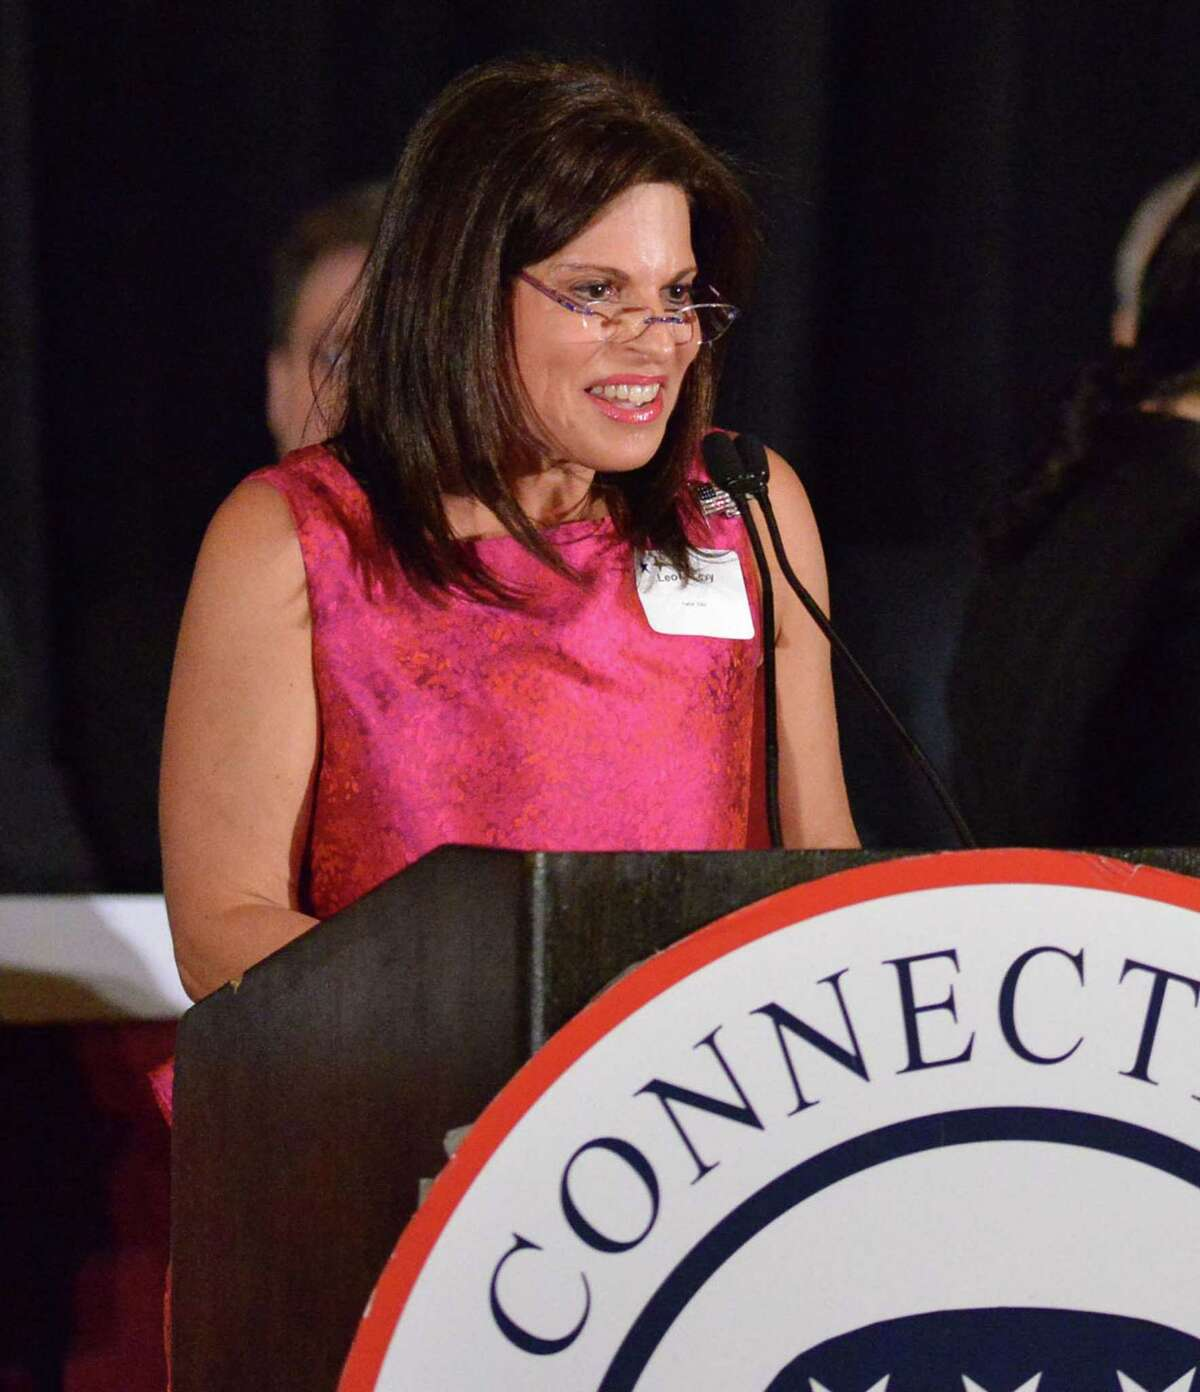 Leora Levy of Greenwich during the 36th annual Prescott Bush Awards Dinner in Stamford, Connecticut, in 2014.